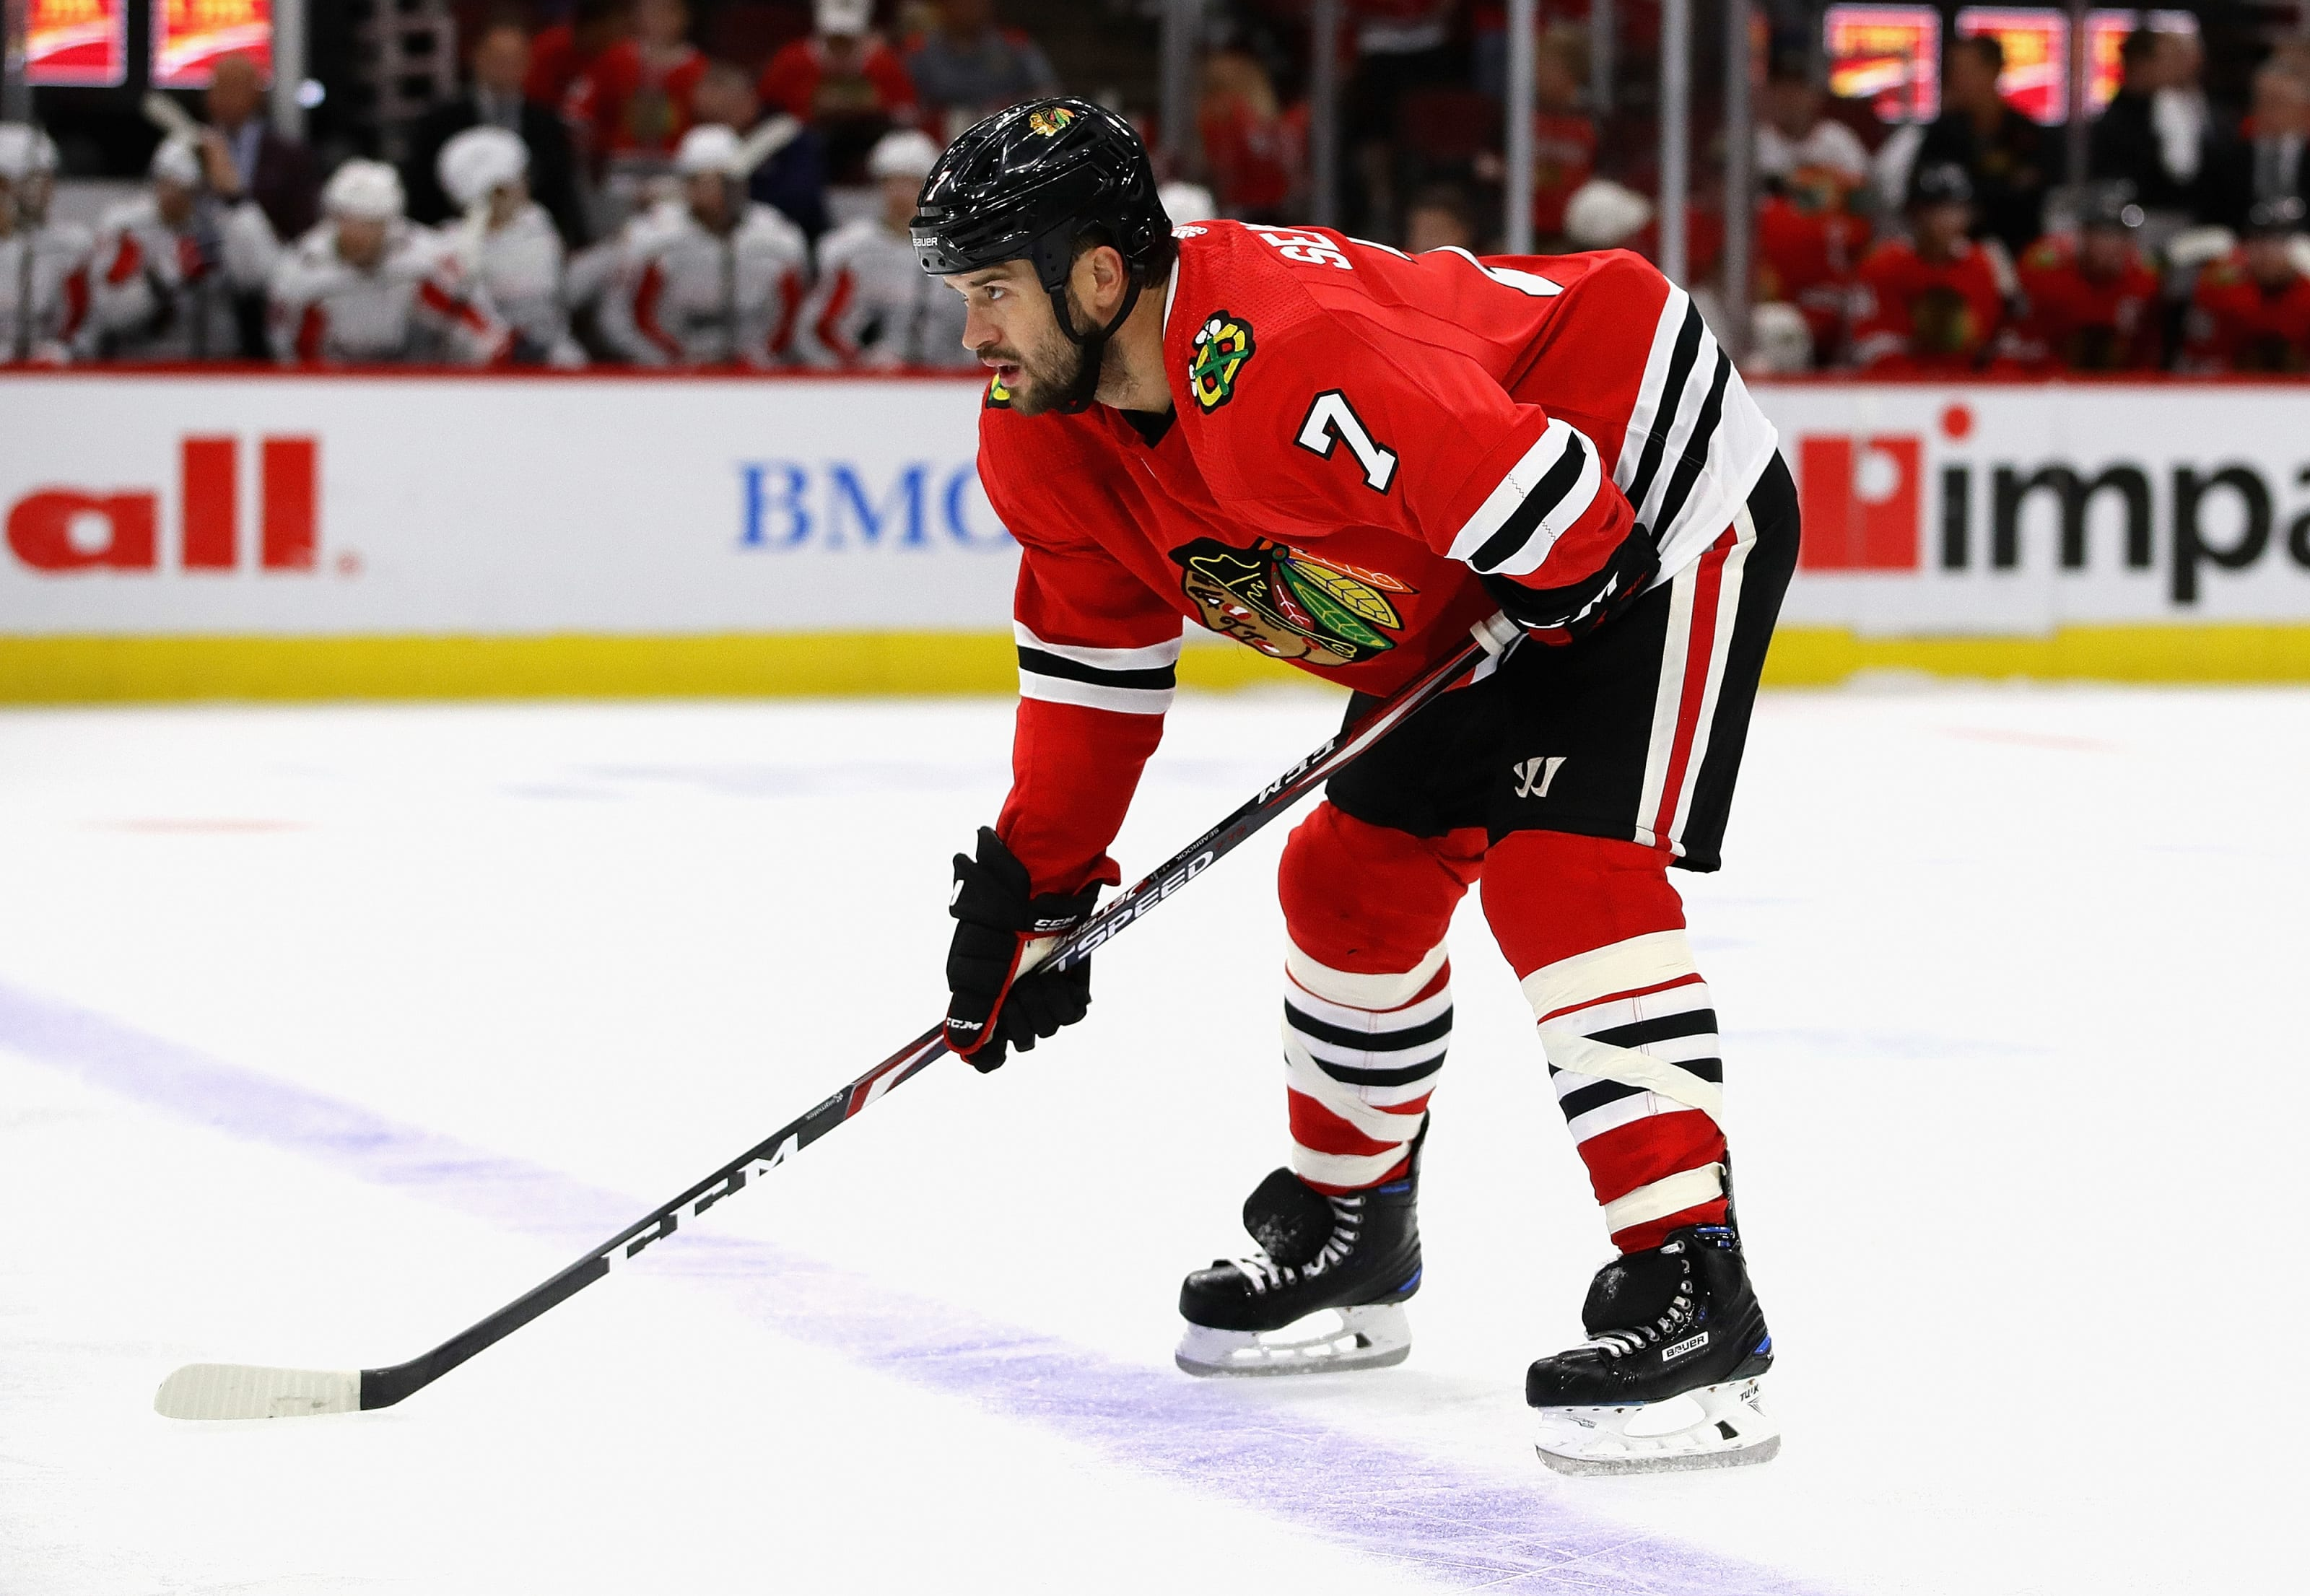 Chicago Blackhawks, Brent Seabrook